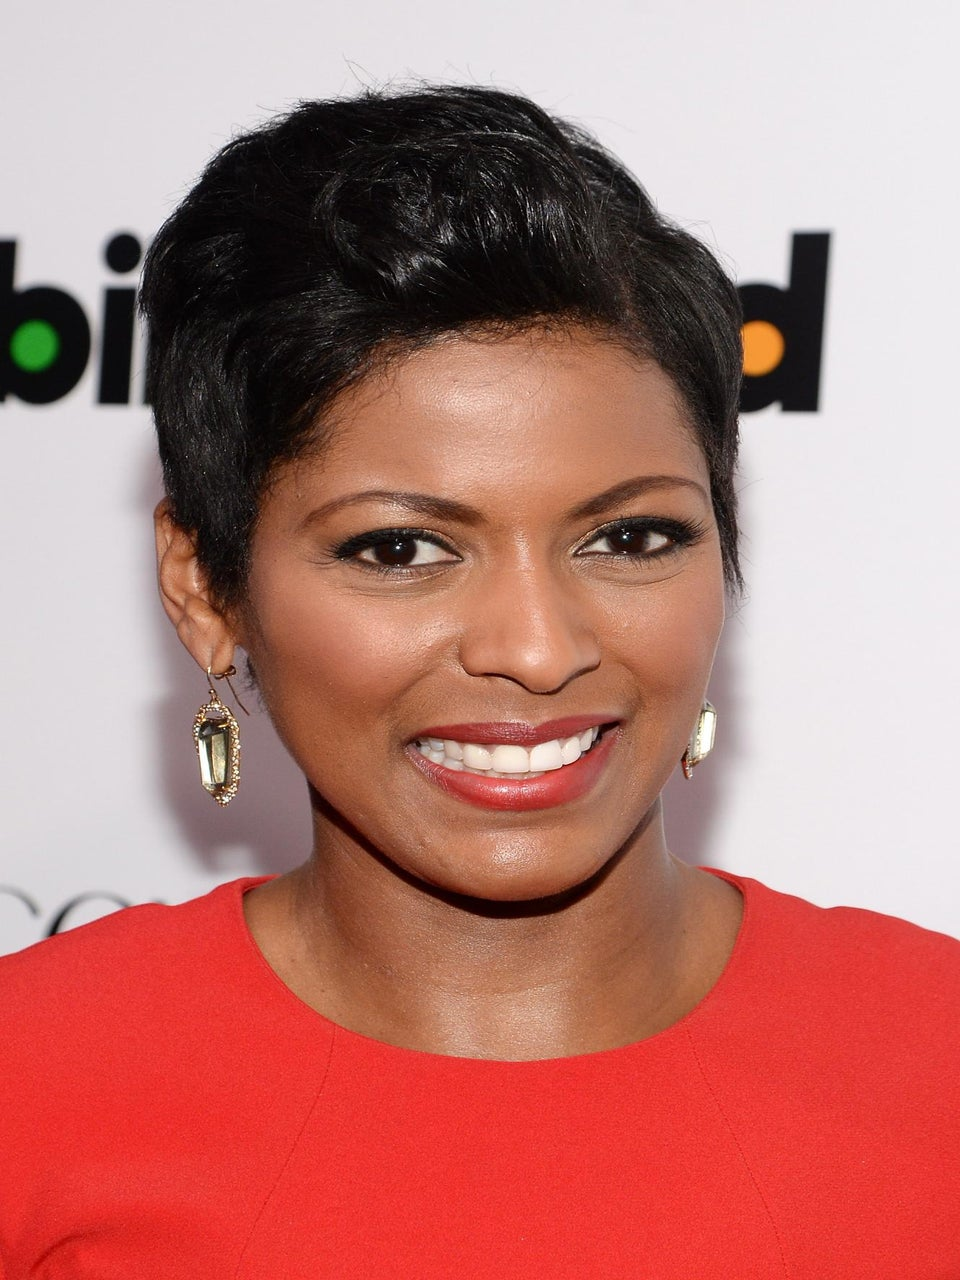 EXCLUSIVE: Tamron Hall on Being First Black Woman To Co-Anchor 'Today' Show